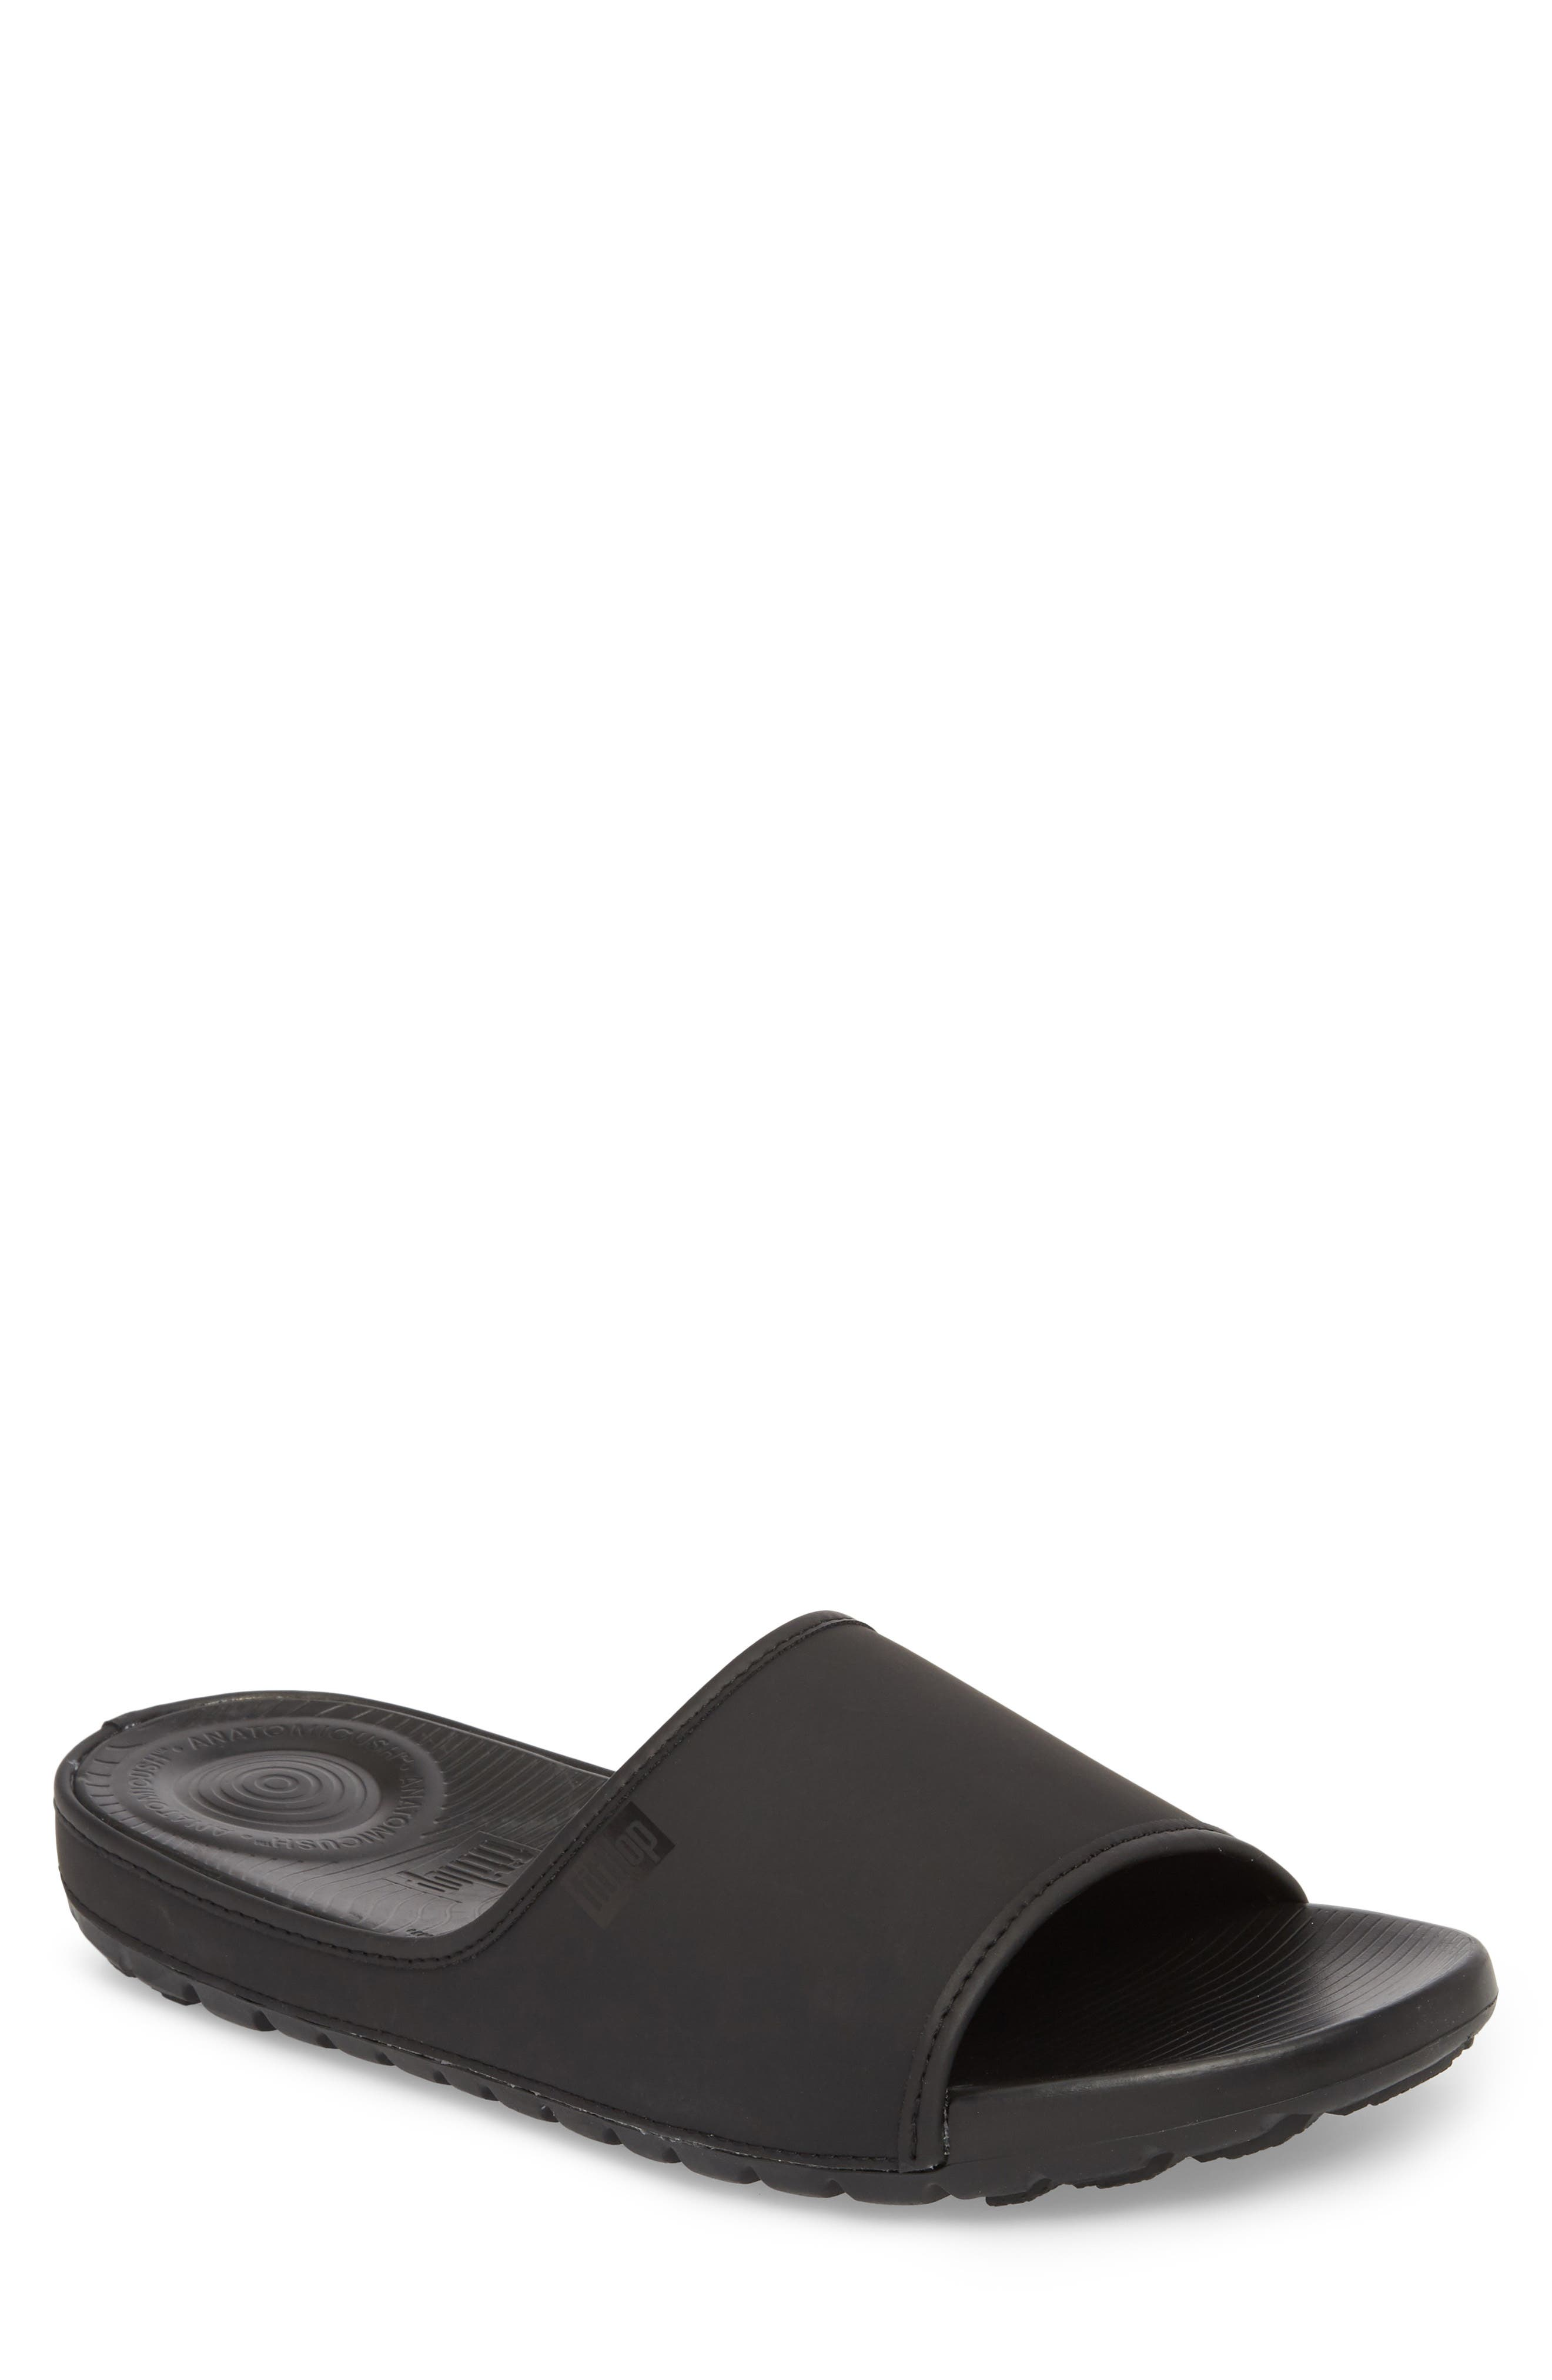 Lido Sport Slide,                             Main thumbnail 1, color,                             Black